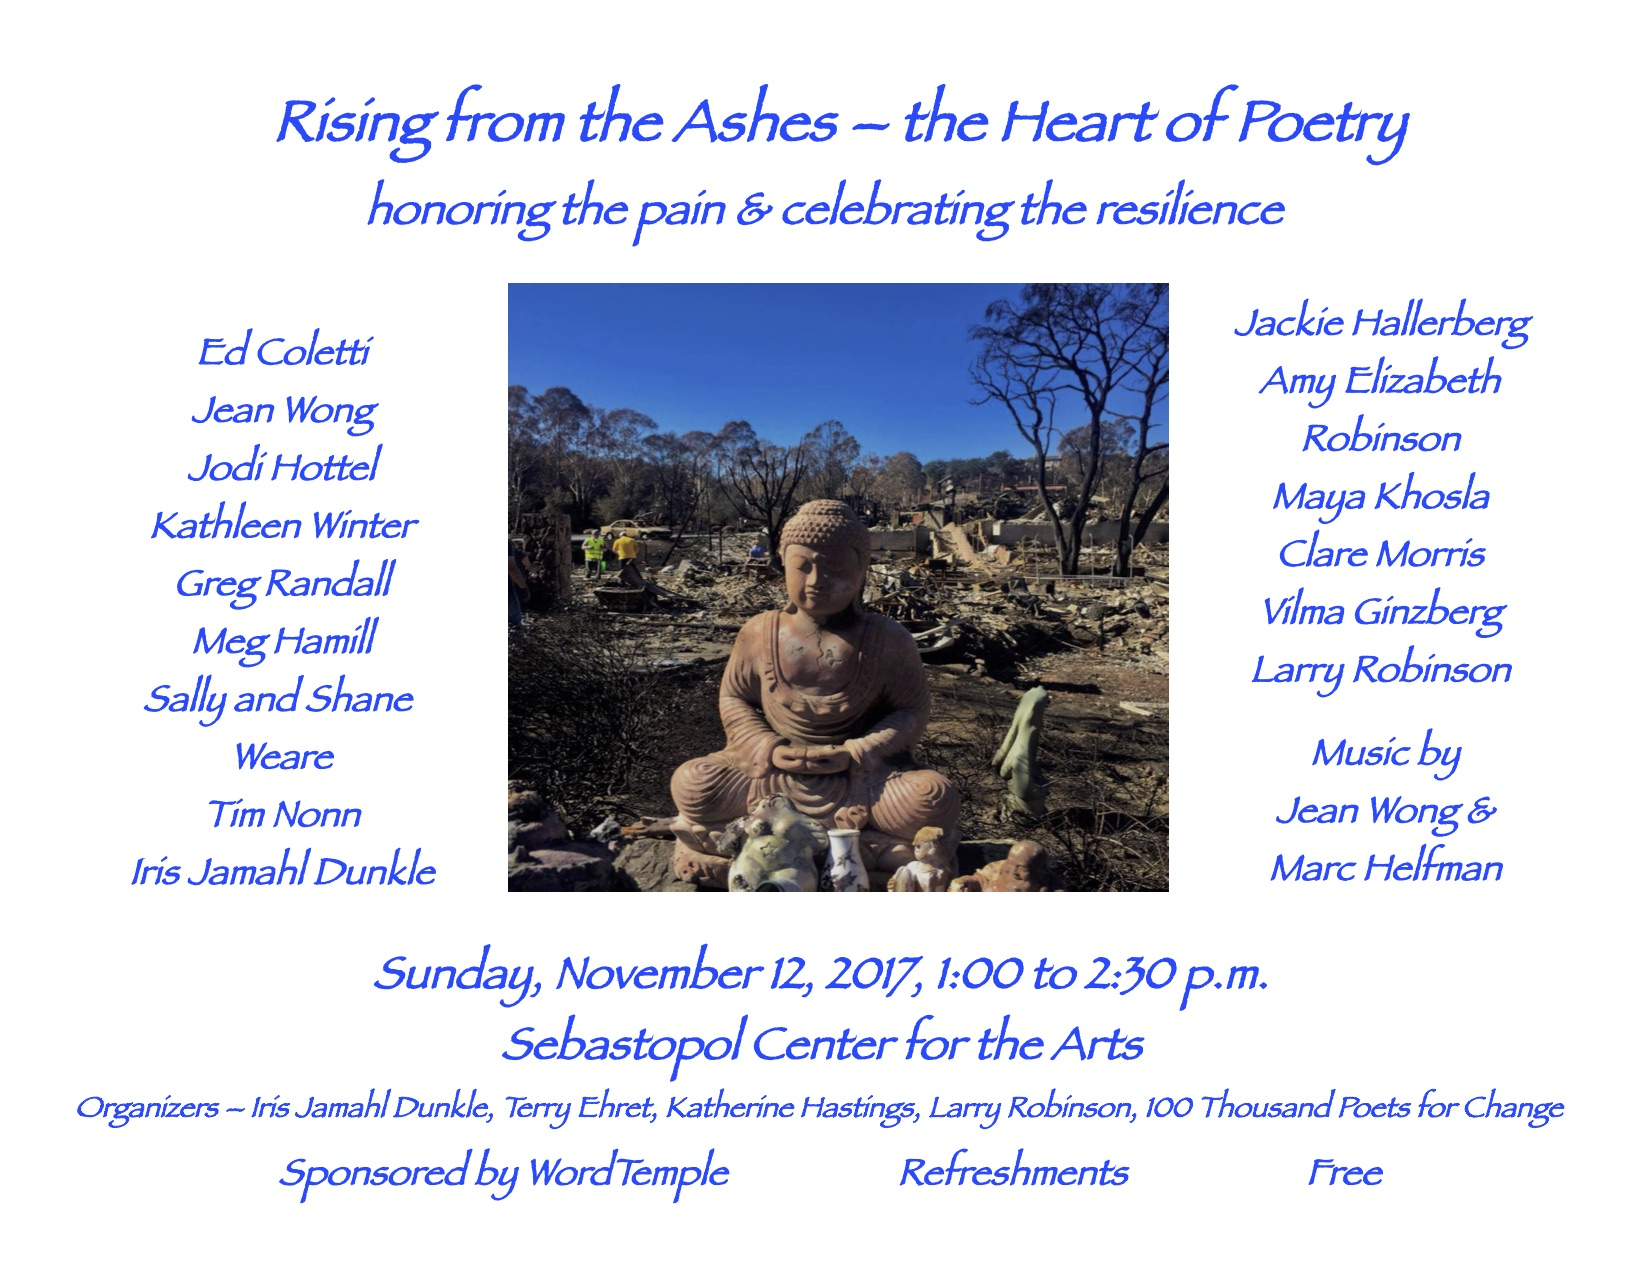 Rising from the Ashes Poetry - the Heart of Poetry, Sebastoipol Center for the Arts Event